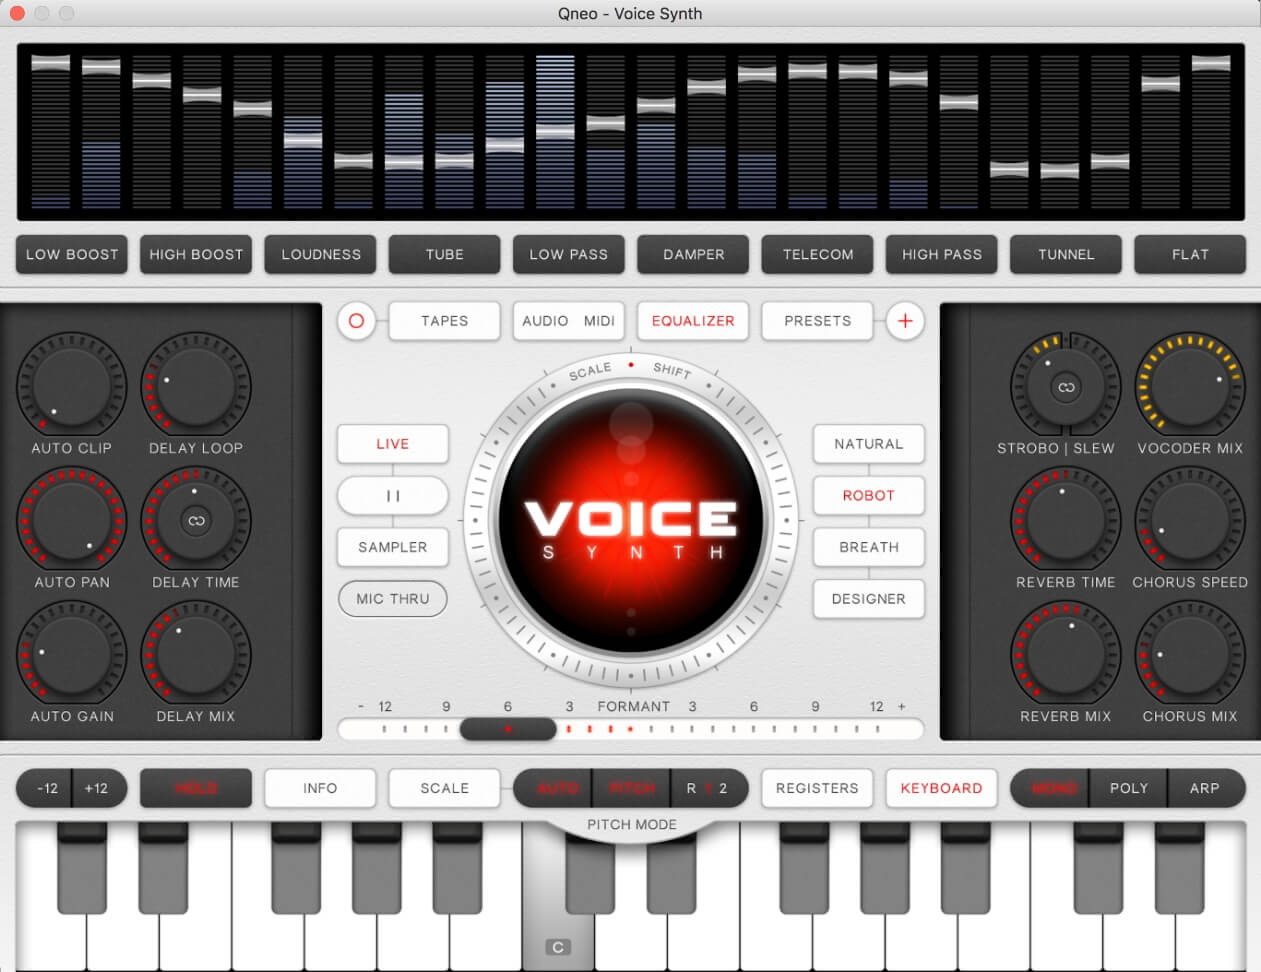 Qneo releases Voice Synth vocoder for Mac